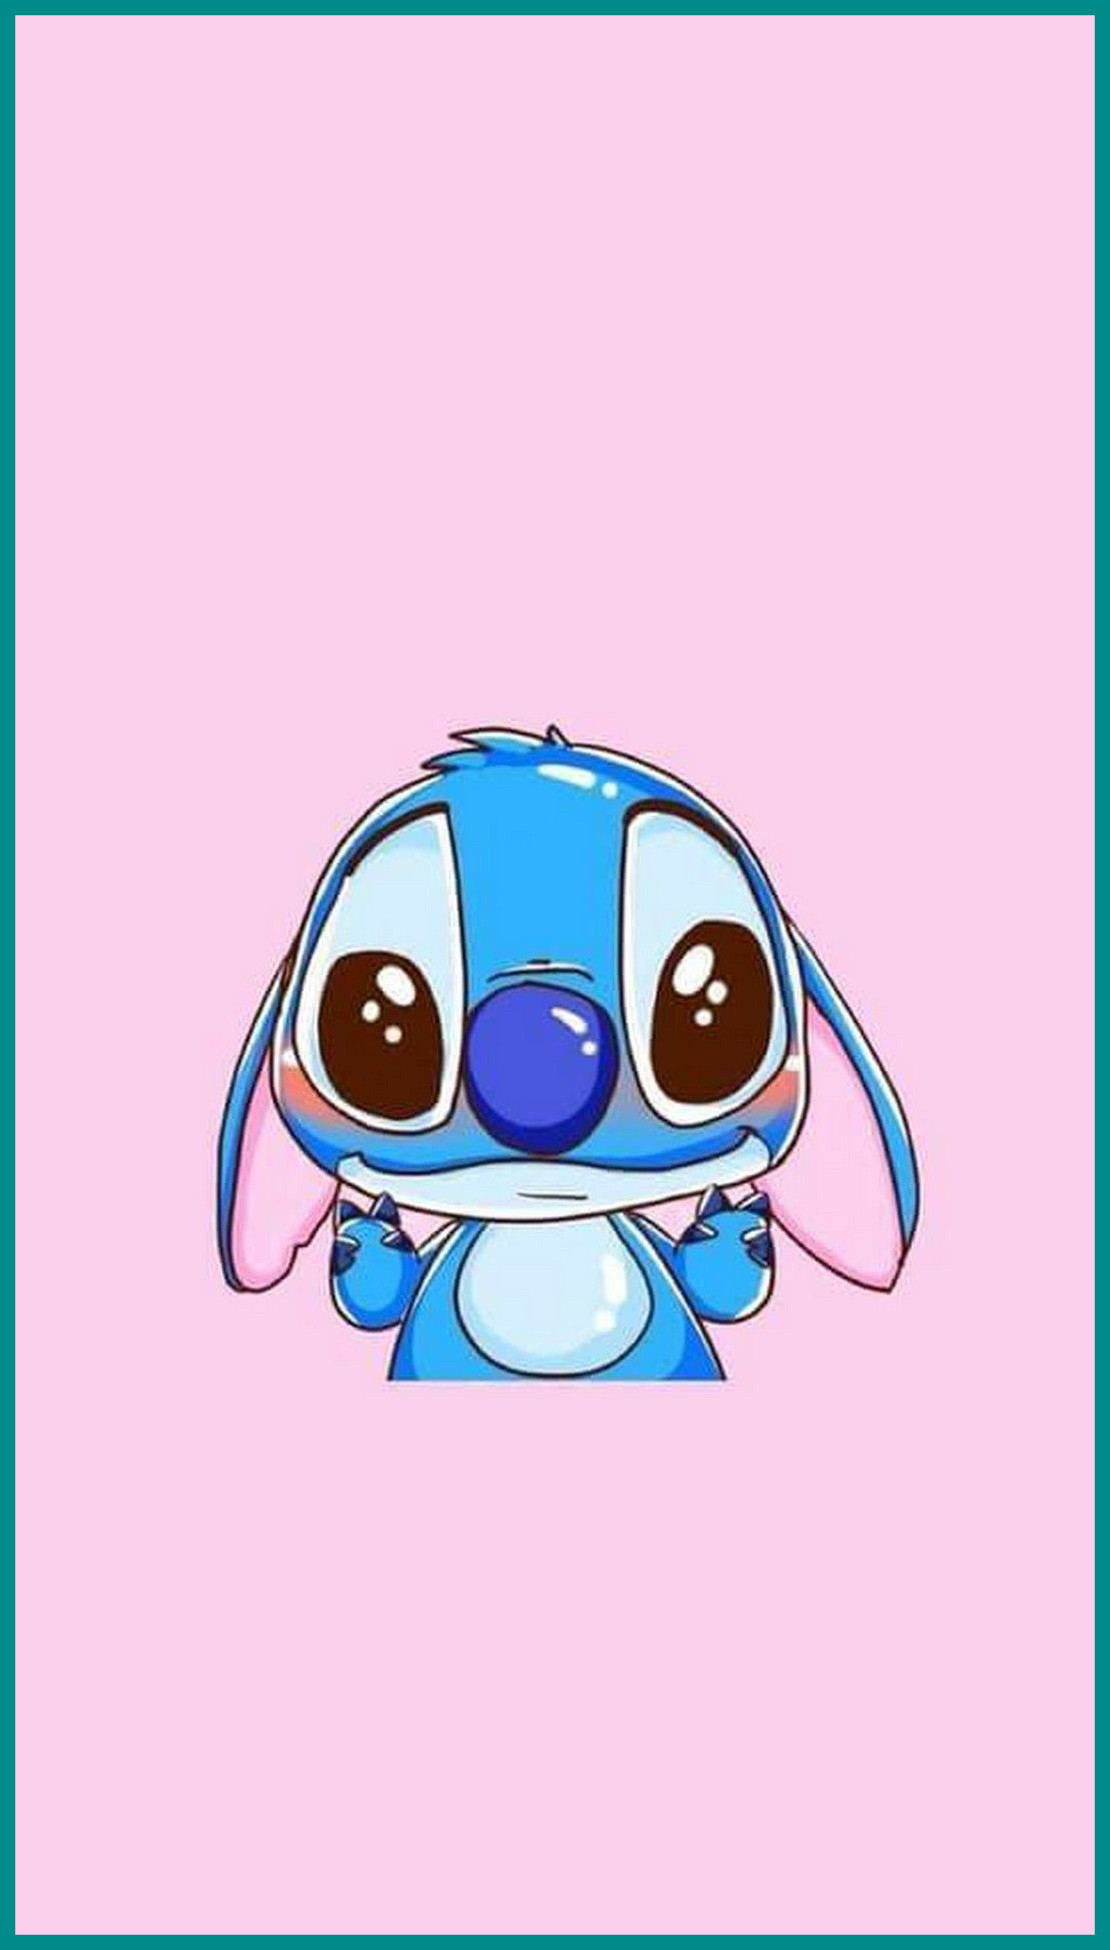 Paper Craft Graceful Cute Stitch Pictures 6 Wallpaper For Mobile Android